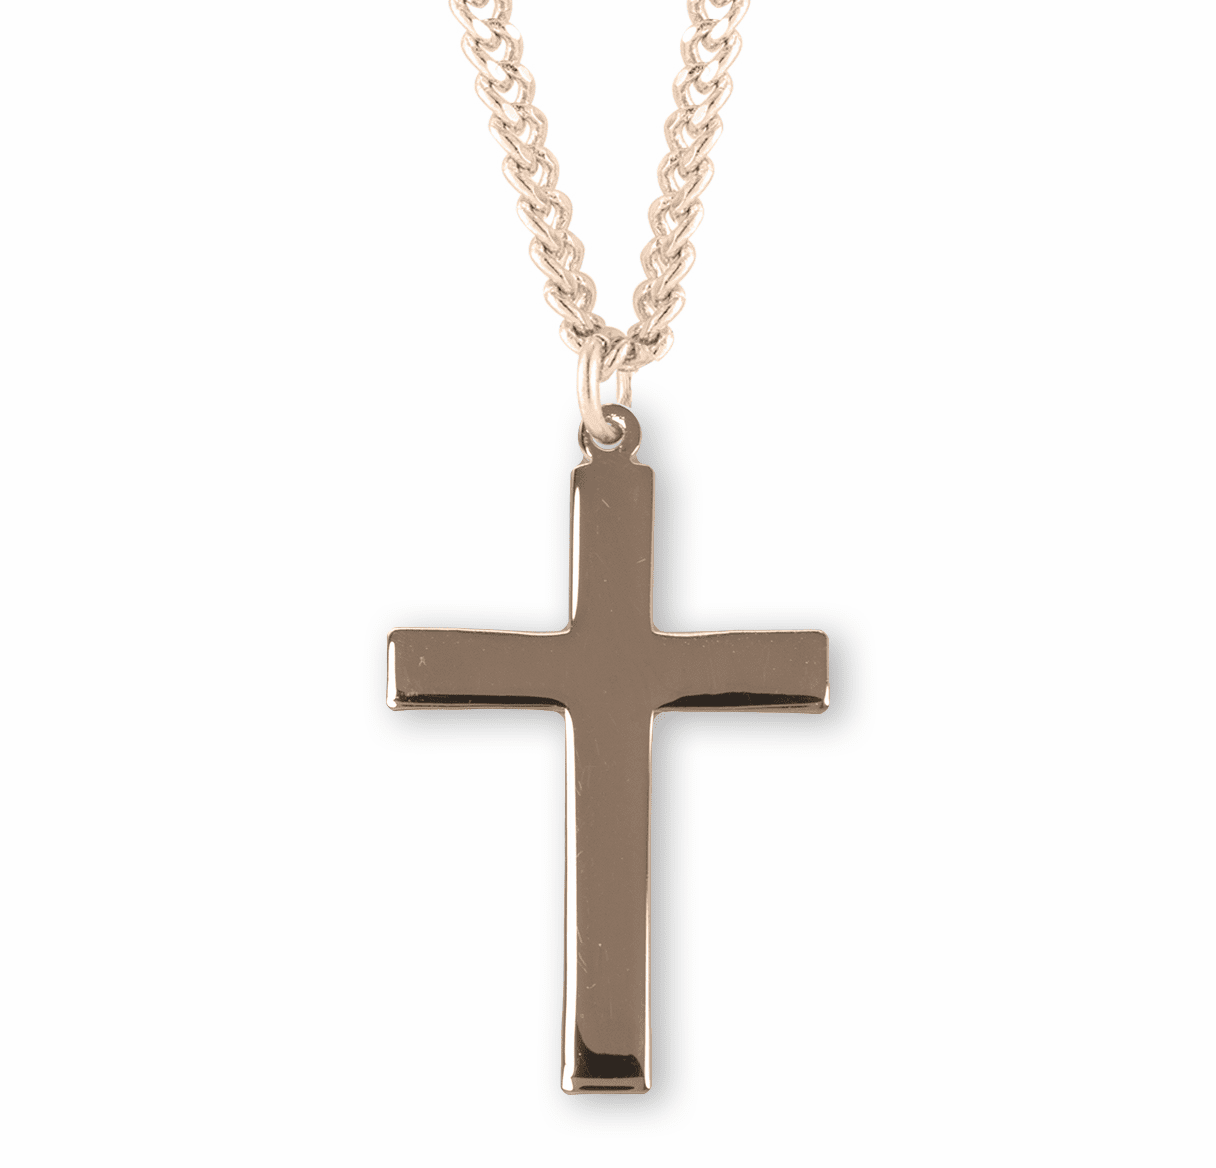 HMH Religious Plain Gold Over Sterling Silver Cross Necklace